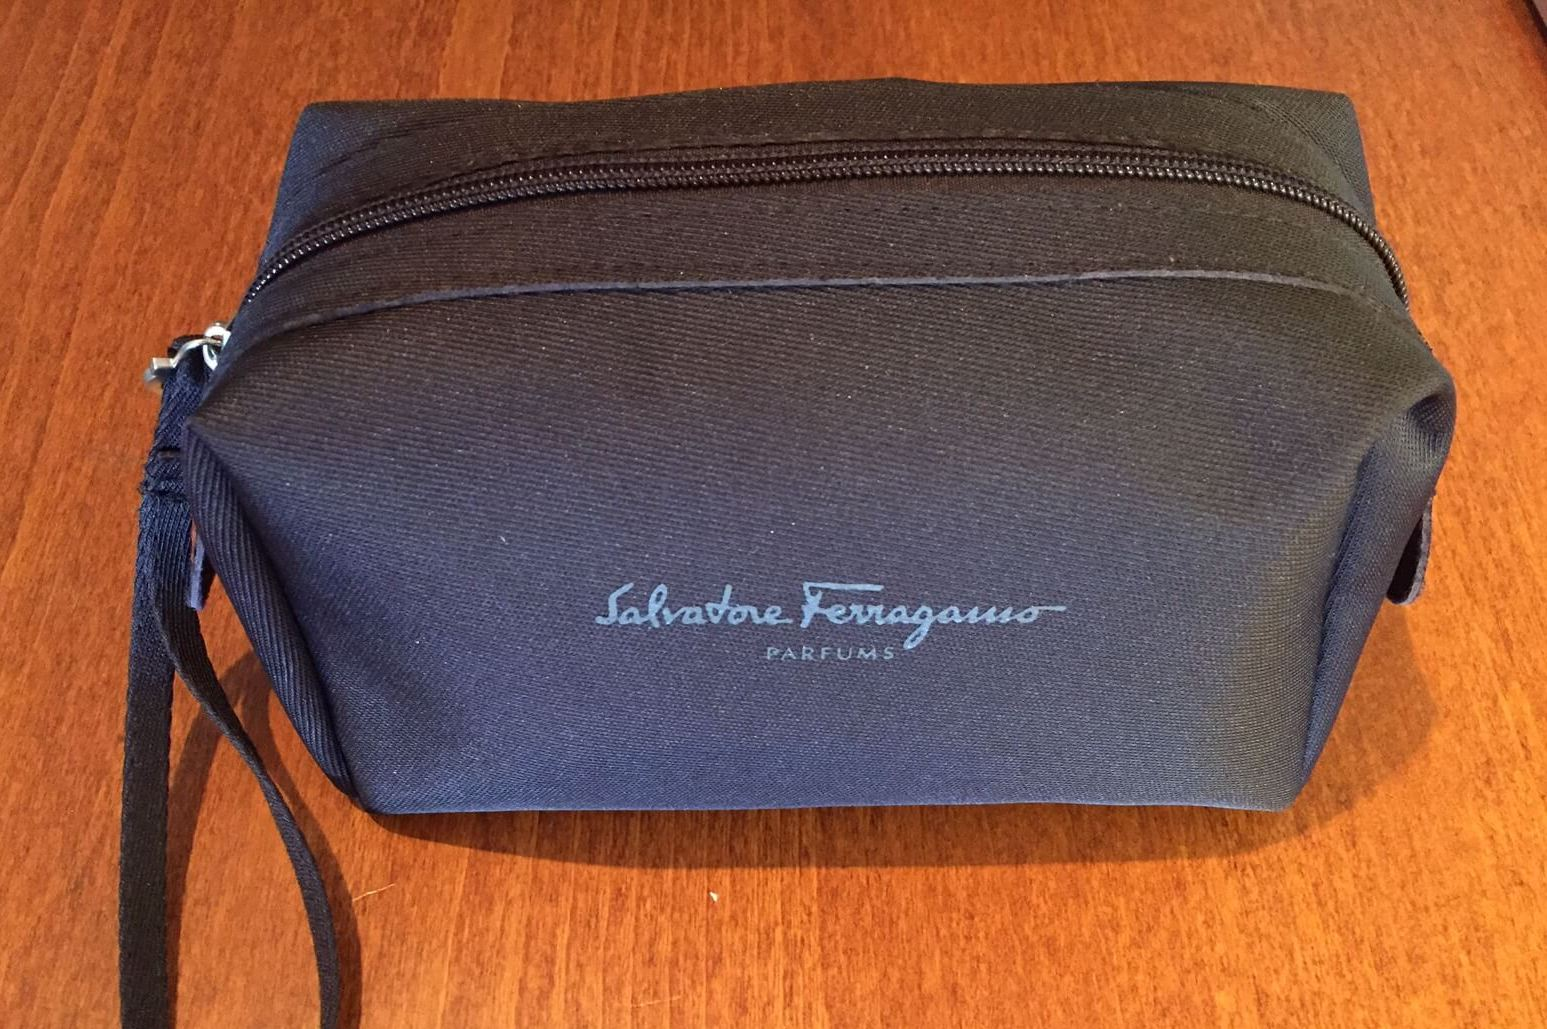 Amenity Kit Salvatore Ferragamo Latam business class